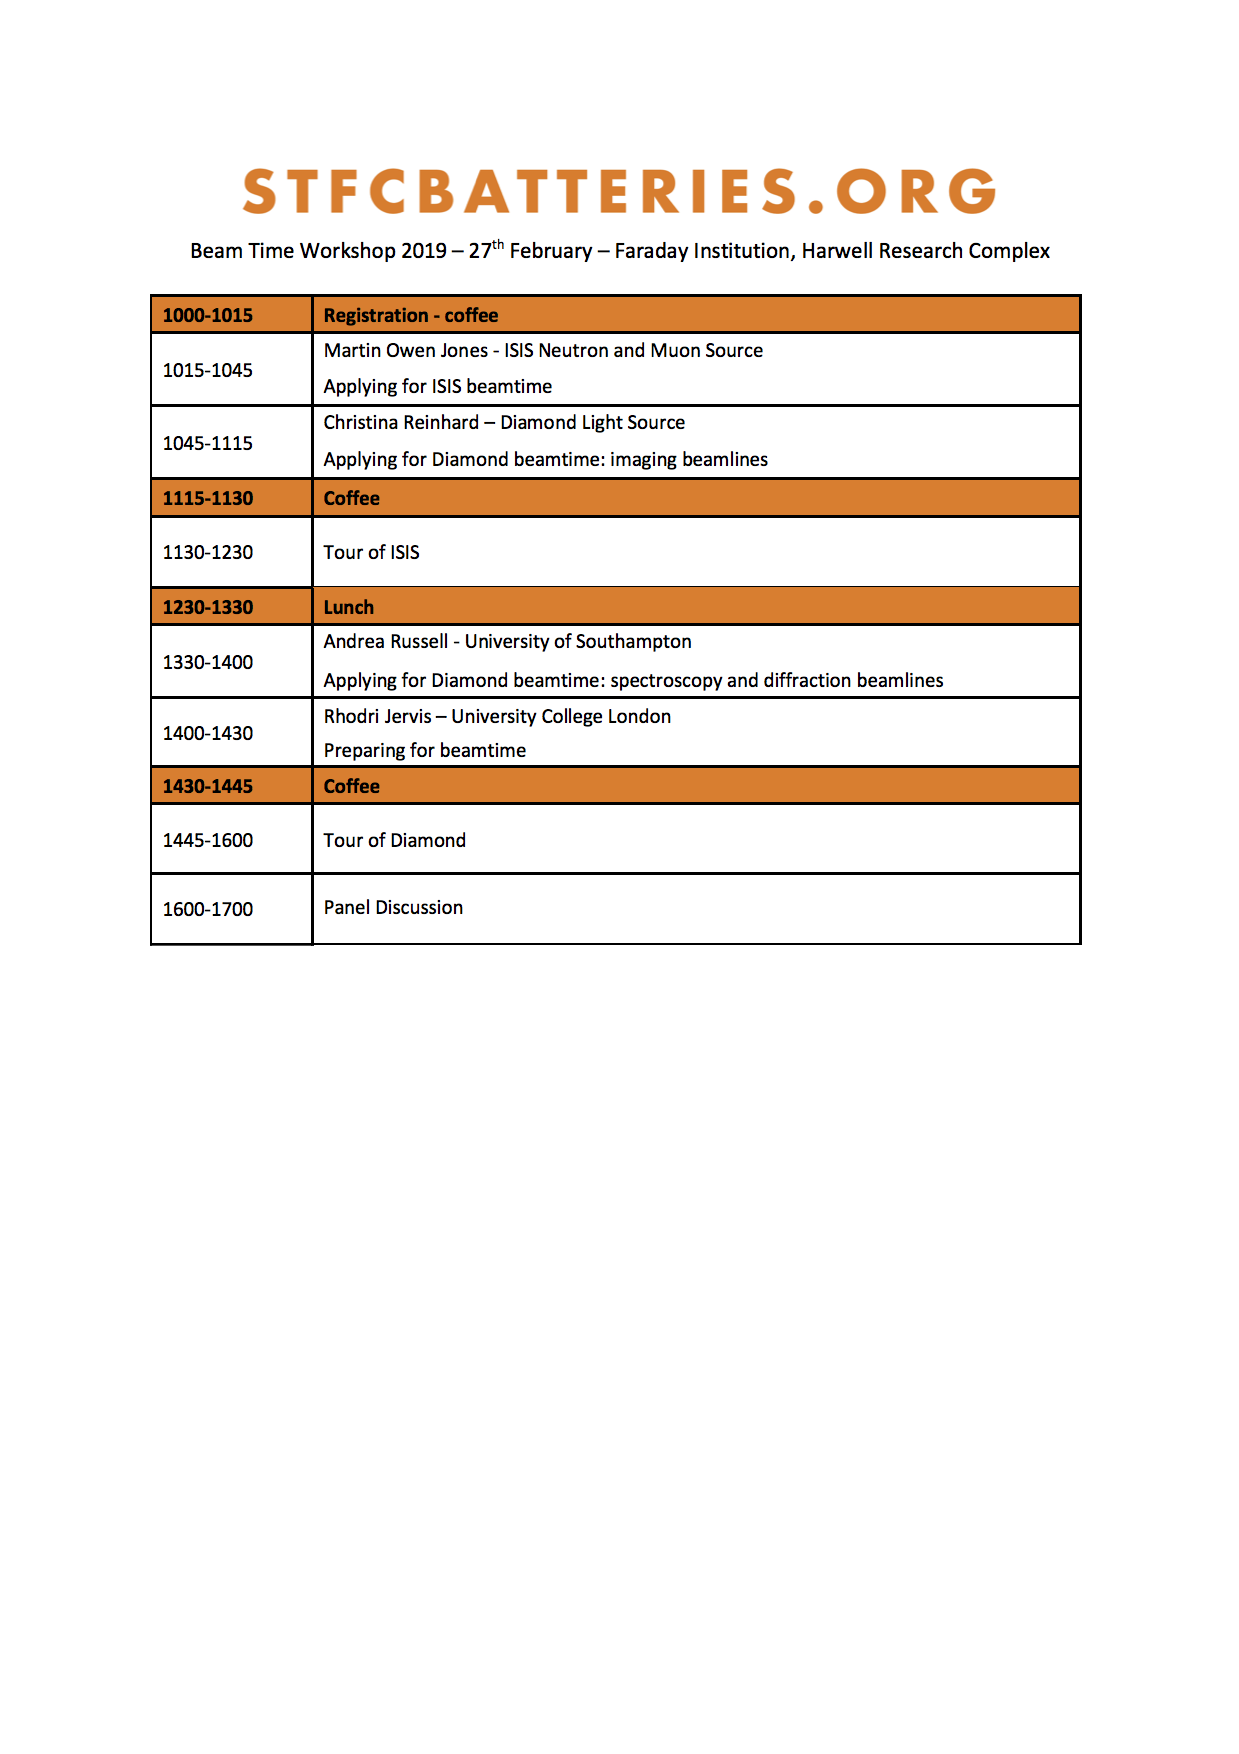 Beam time workshop agenda.png